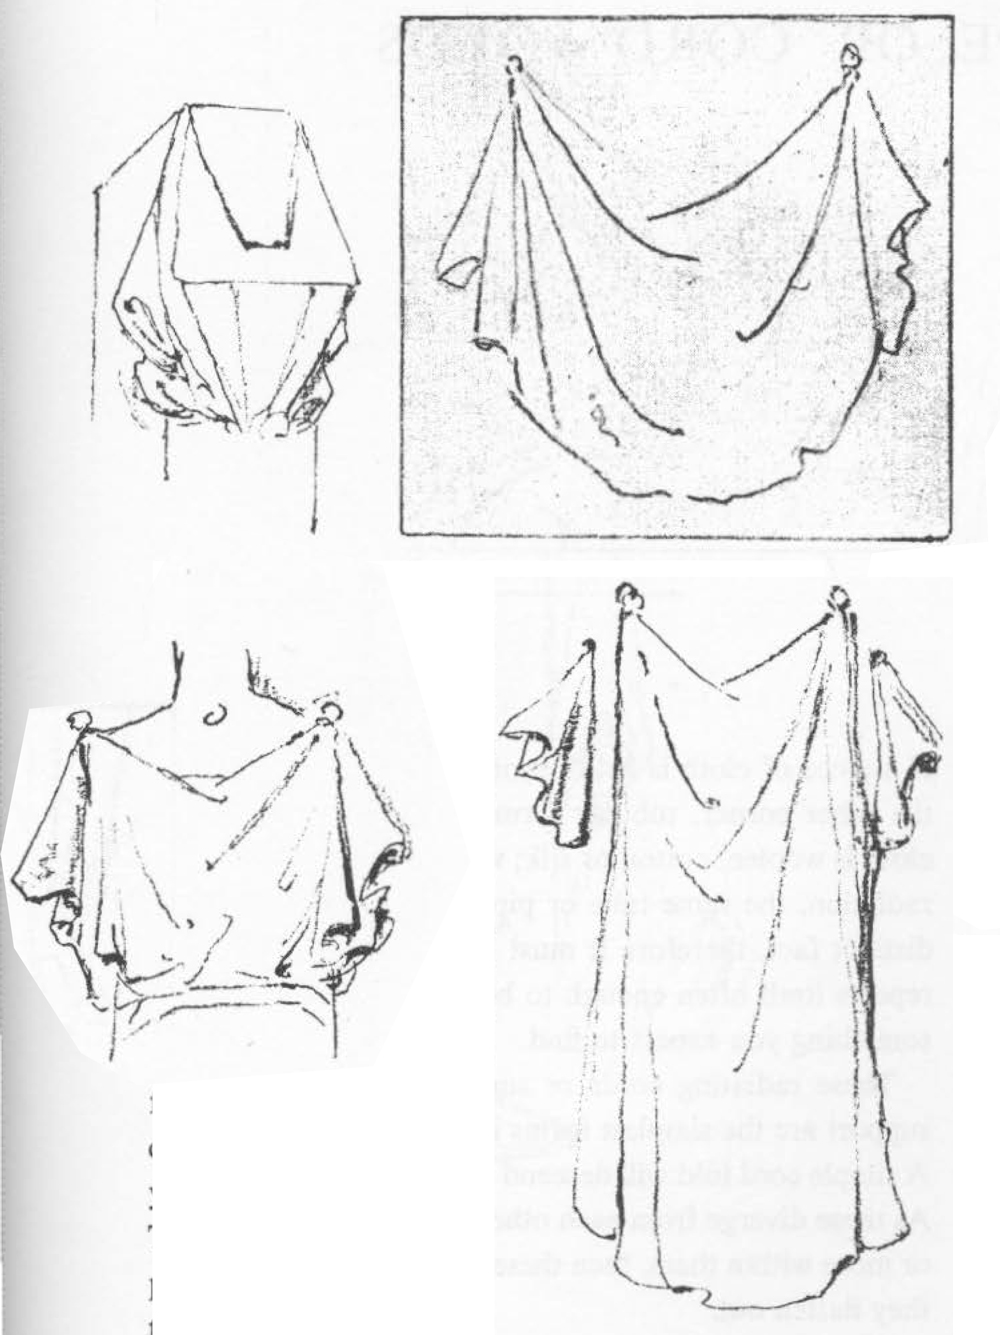 huge guide to drawing folds in clothing and drapery with